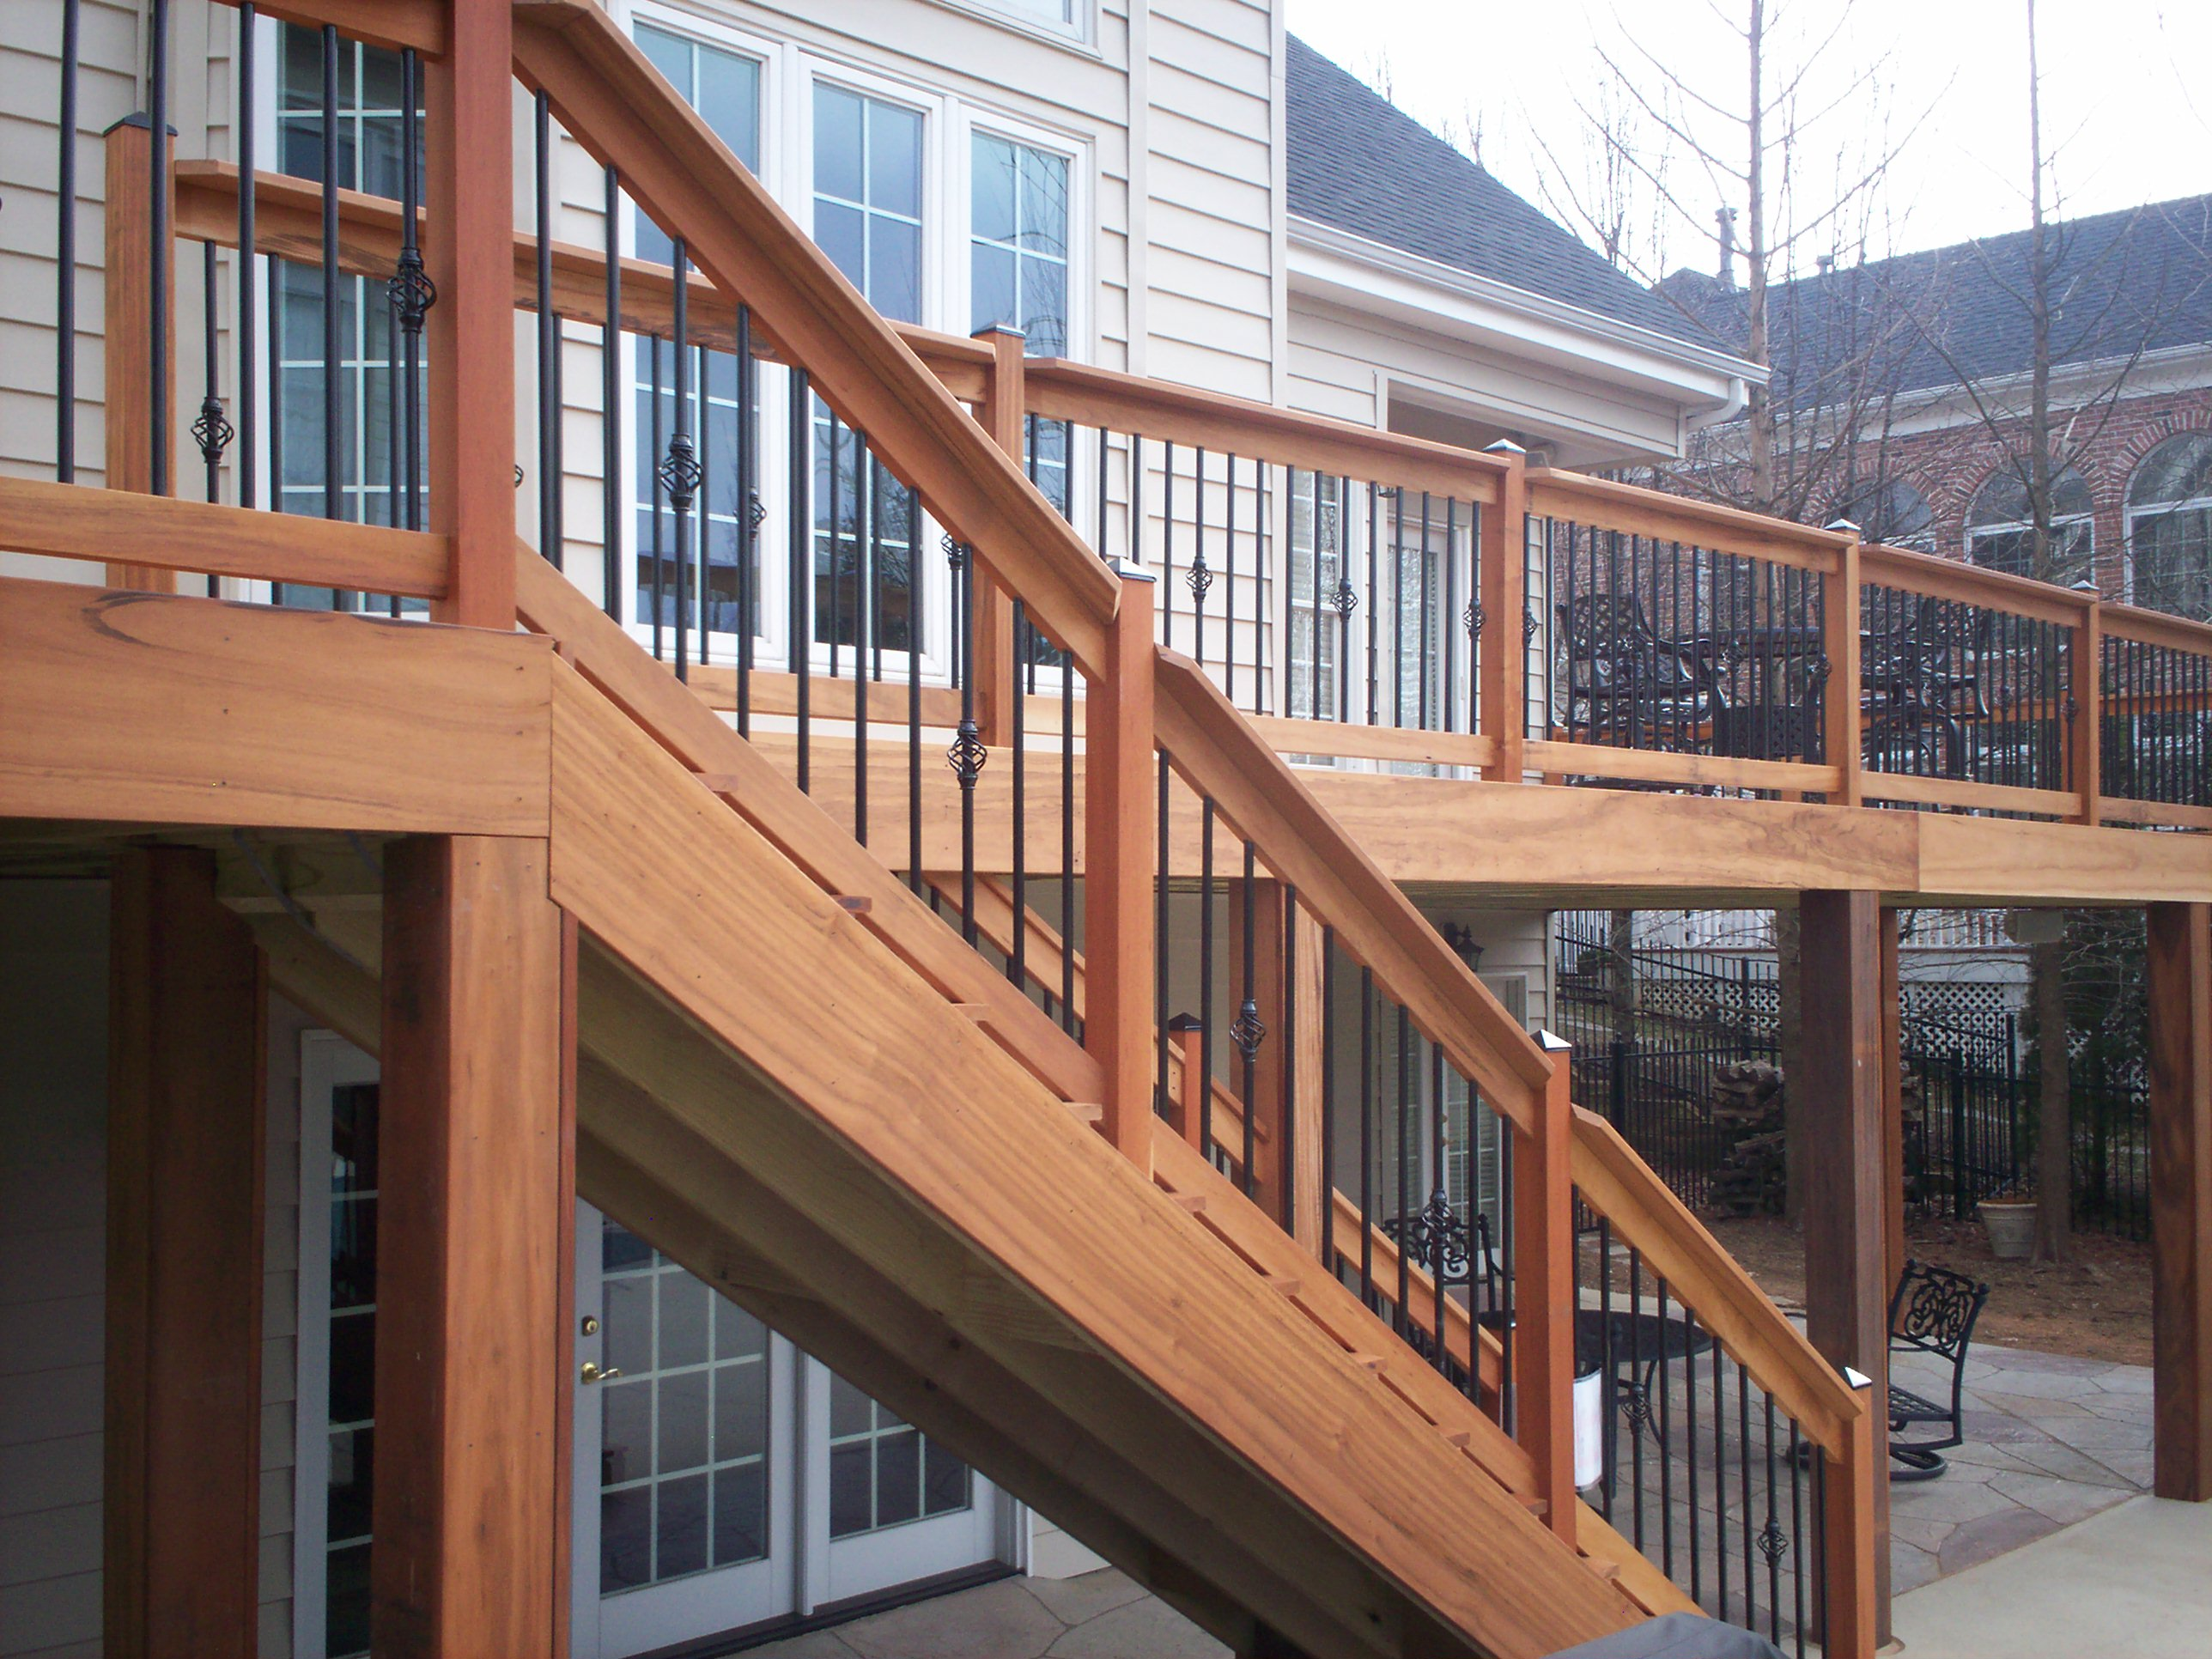 St louis decks with railing st louis decks screened for Exterior balcony design